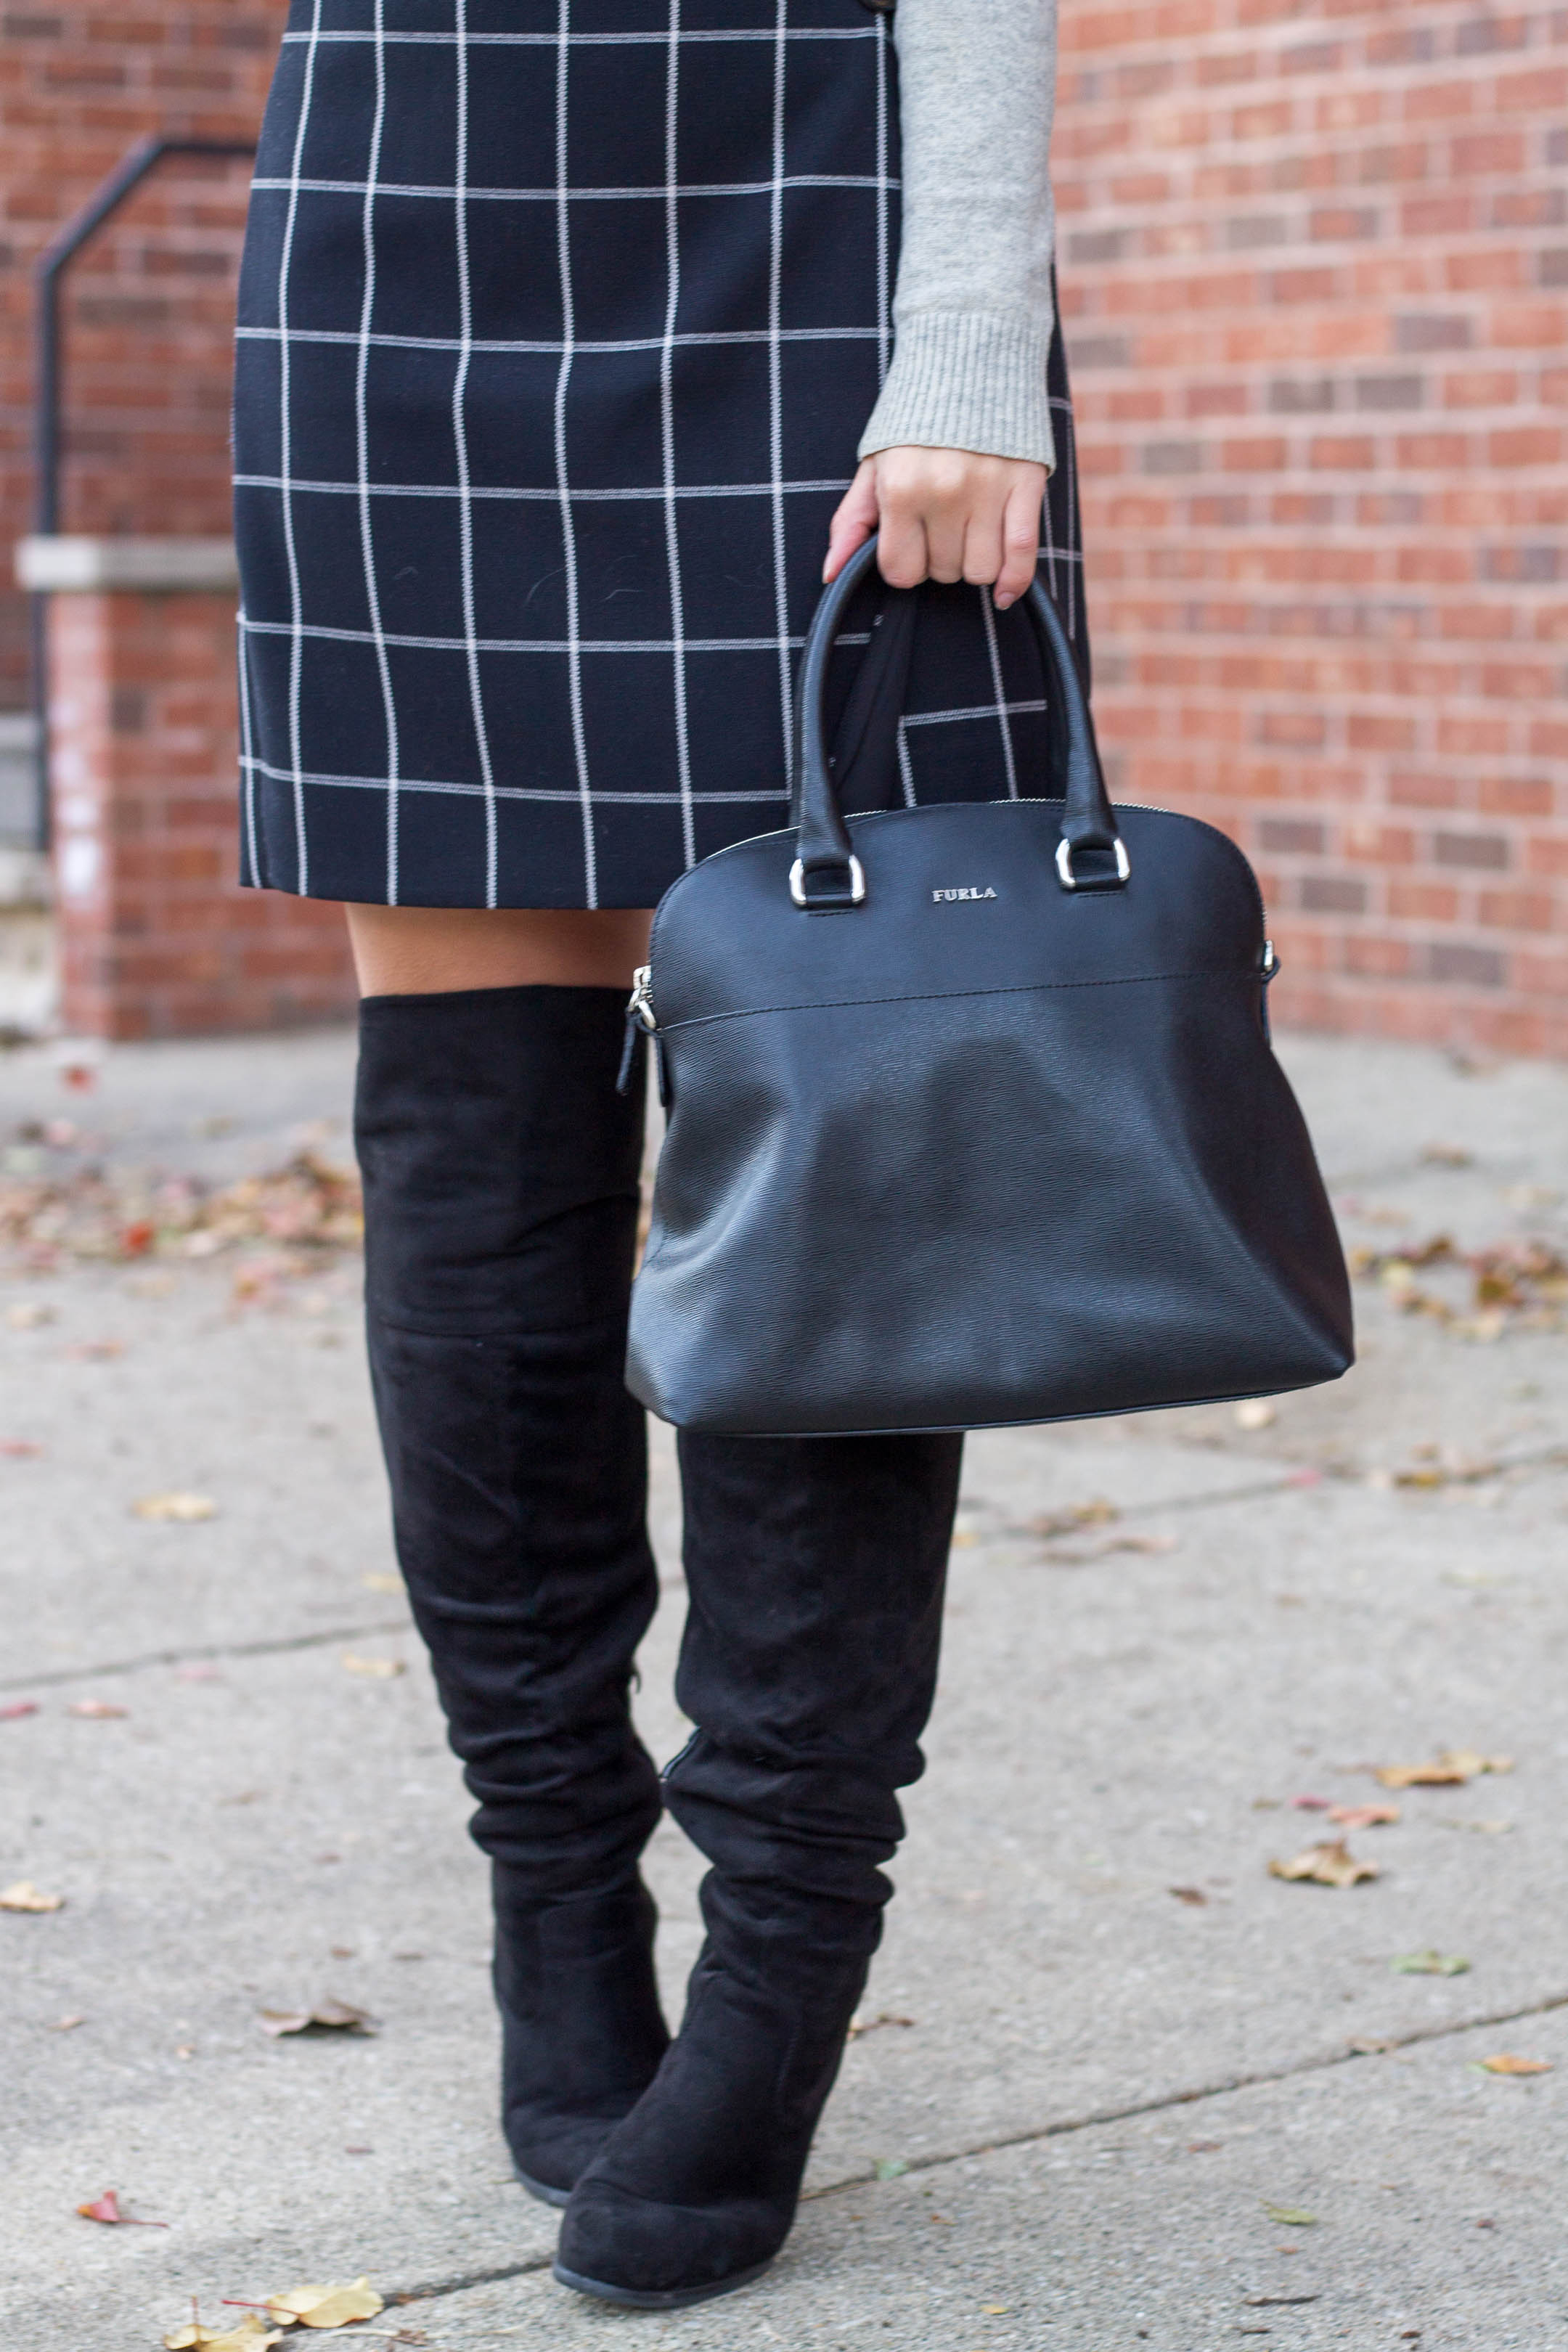 A furla handbag with Journee Collection knee high boots